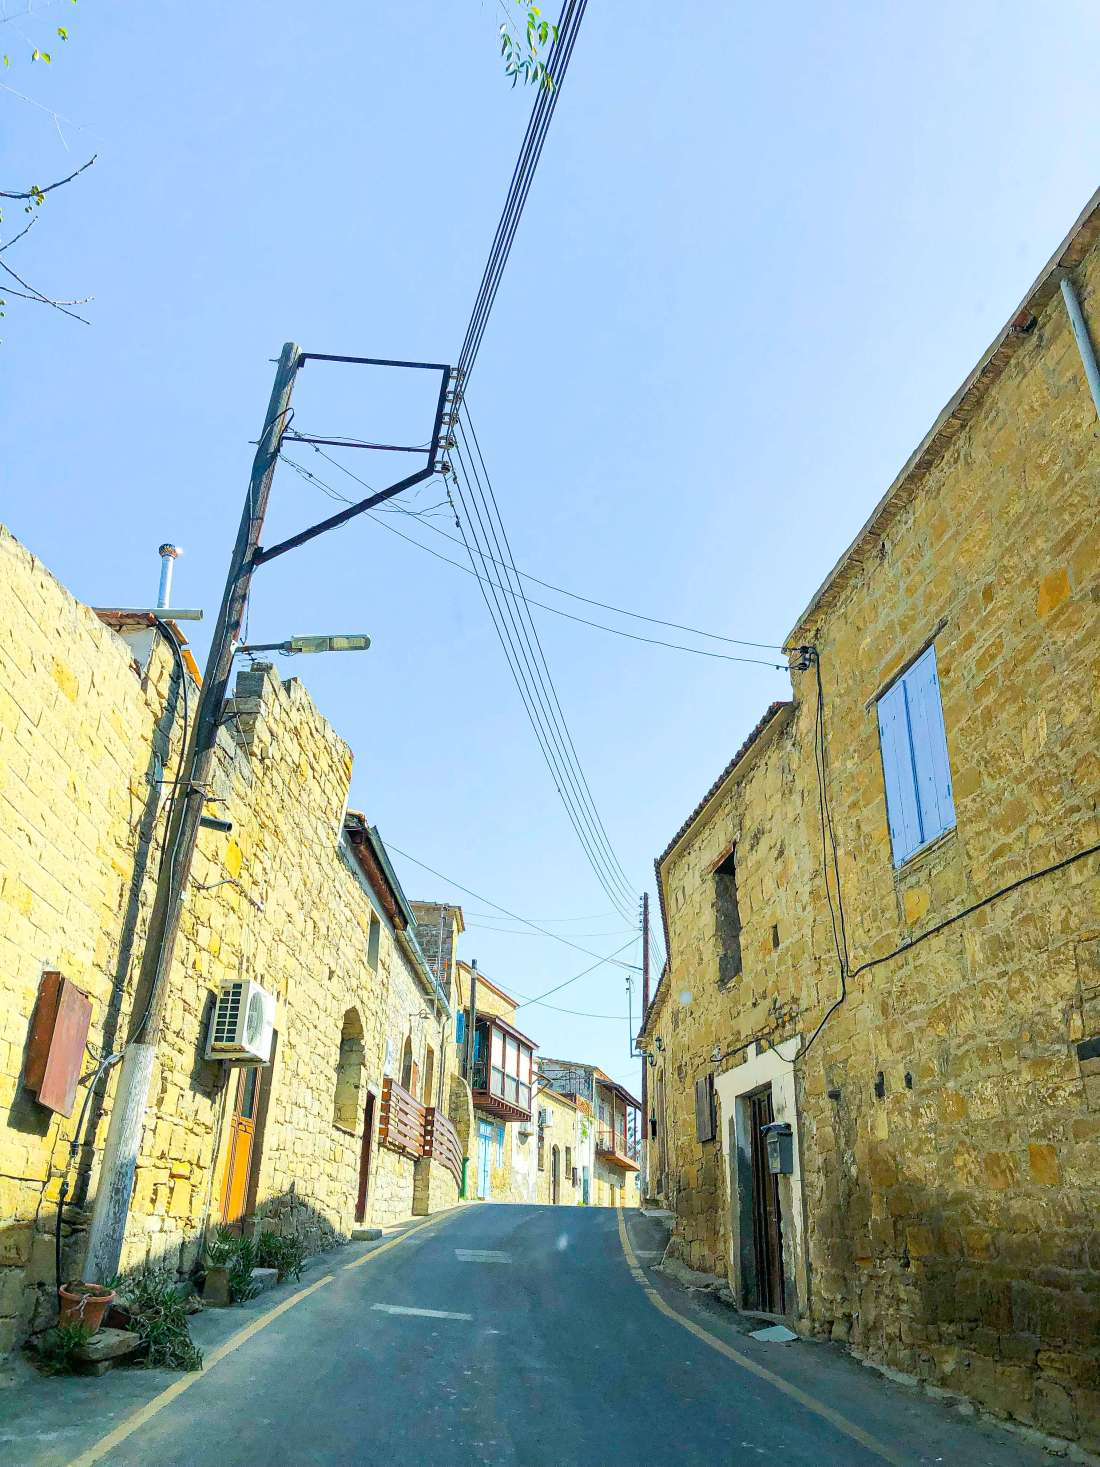 Streets-of-Tochni-Cyprus